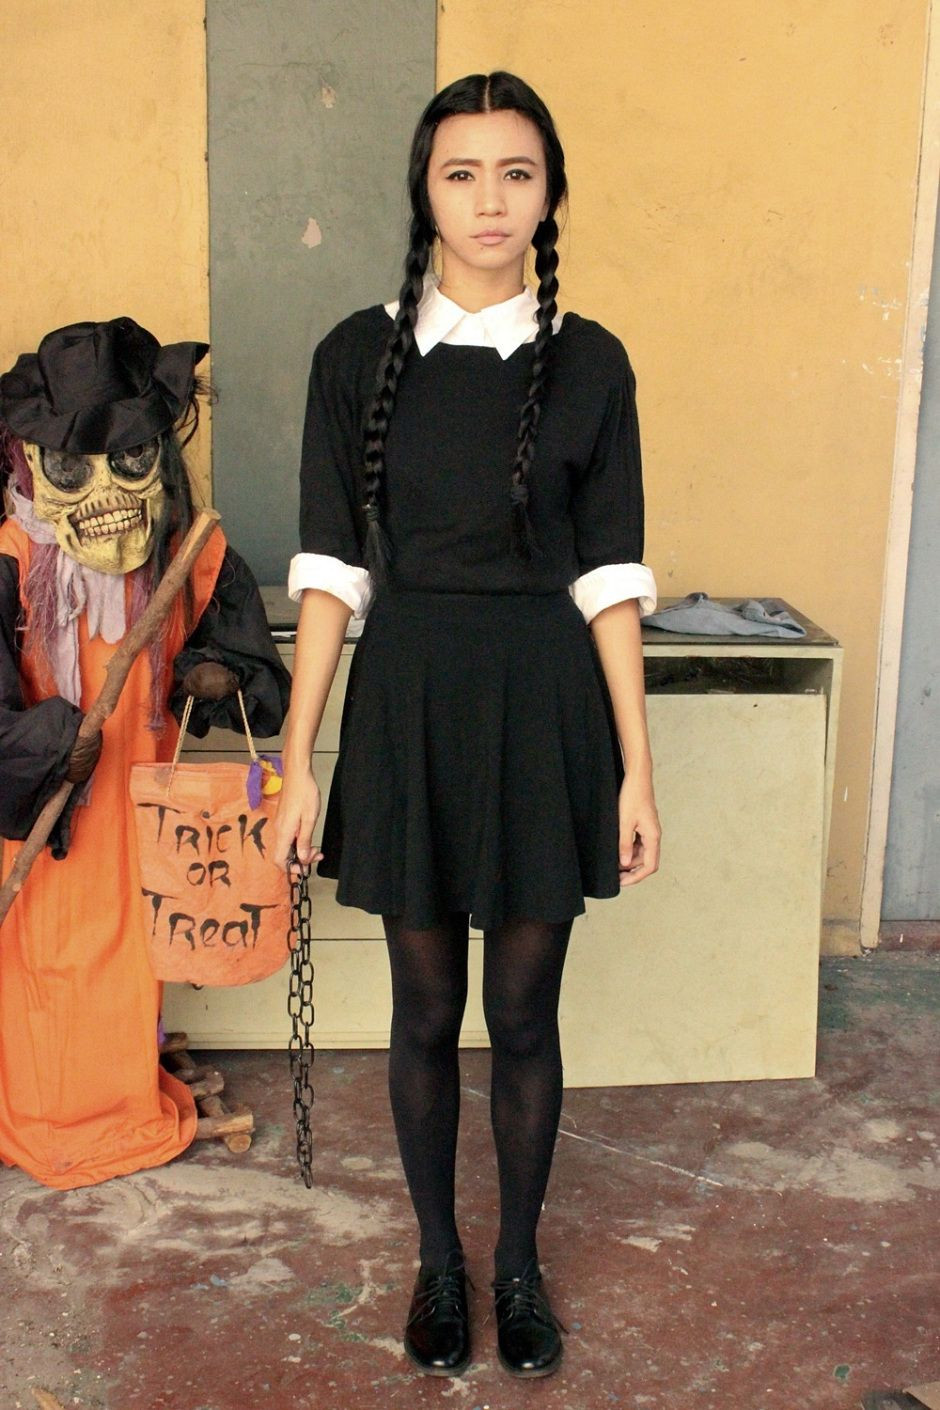 Best ideas about Wednesday Addams DIY Costume . Save or Pin DIY WEDNESDAY ADDAMS HALLOWEEN COSTUME Now.